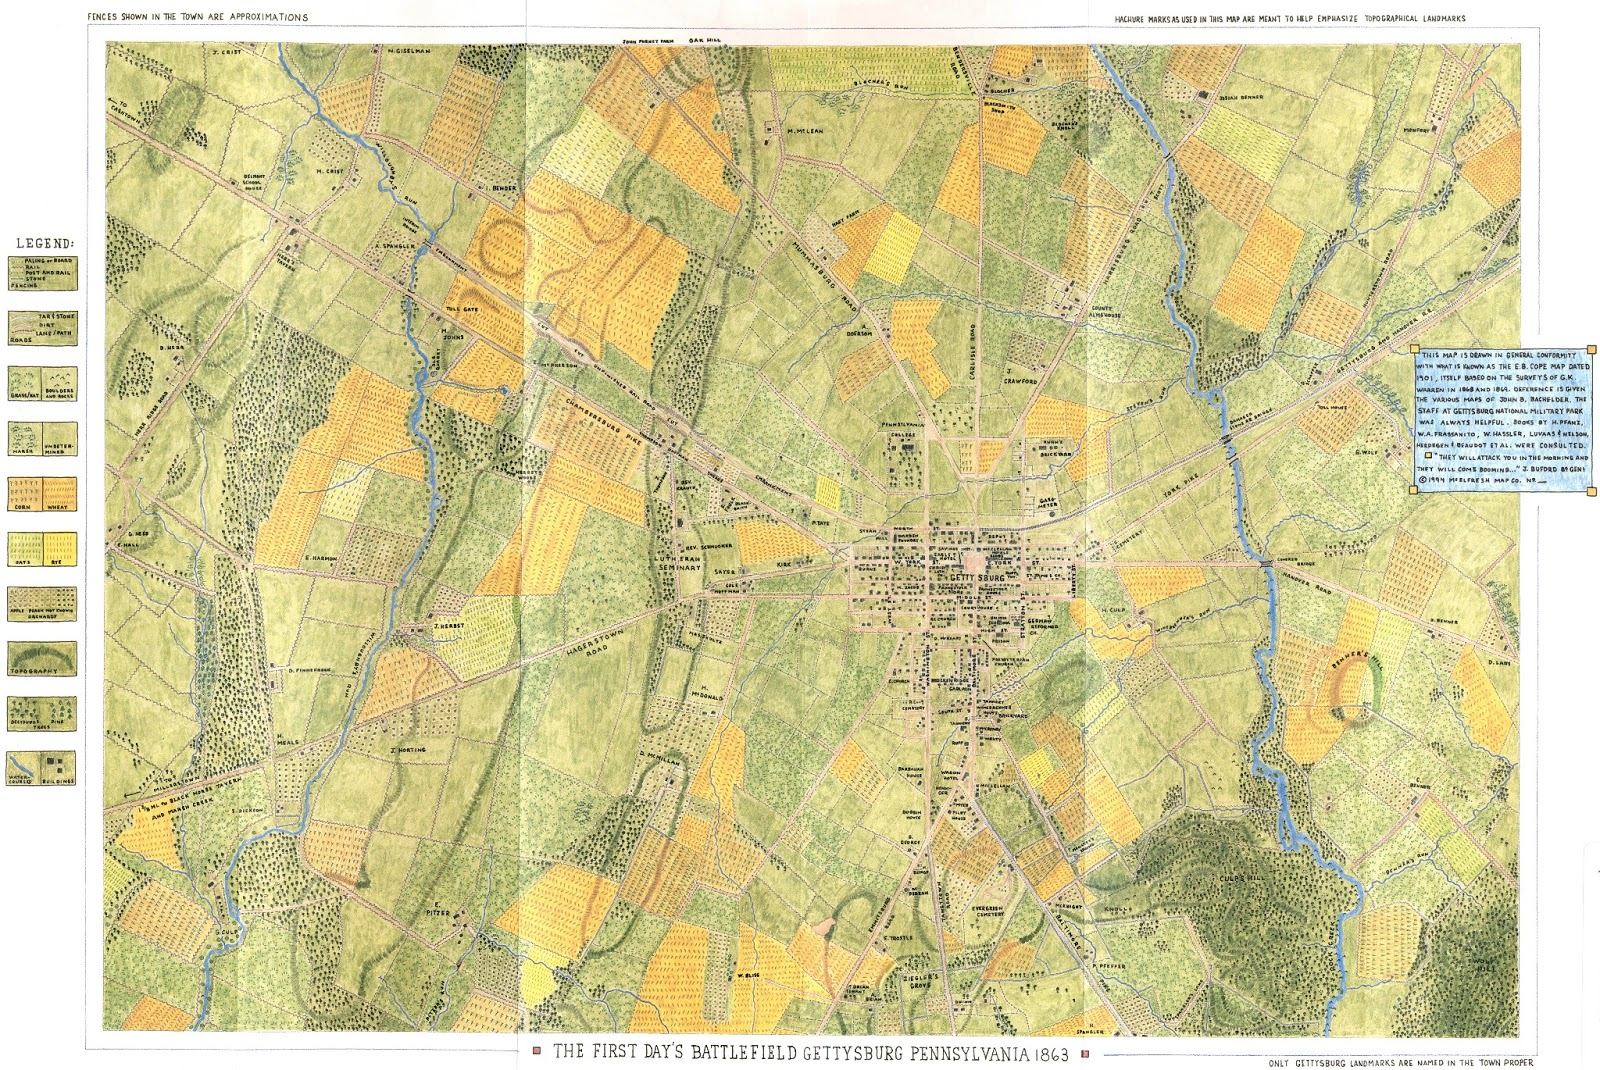 Gettysburg Topographic Map.Gis Research And Map Collection Gettysburg Battlefield Maps